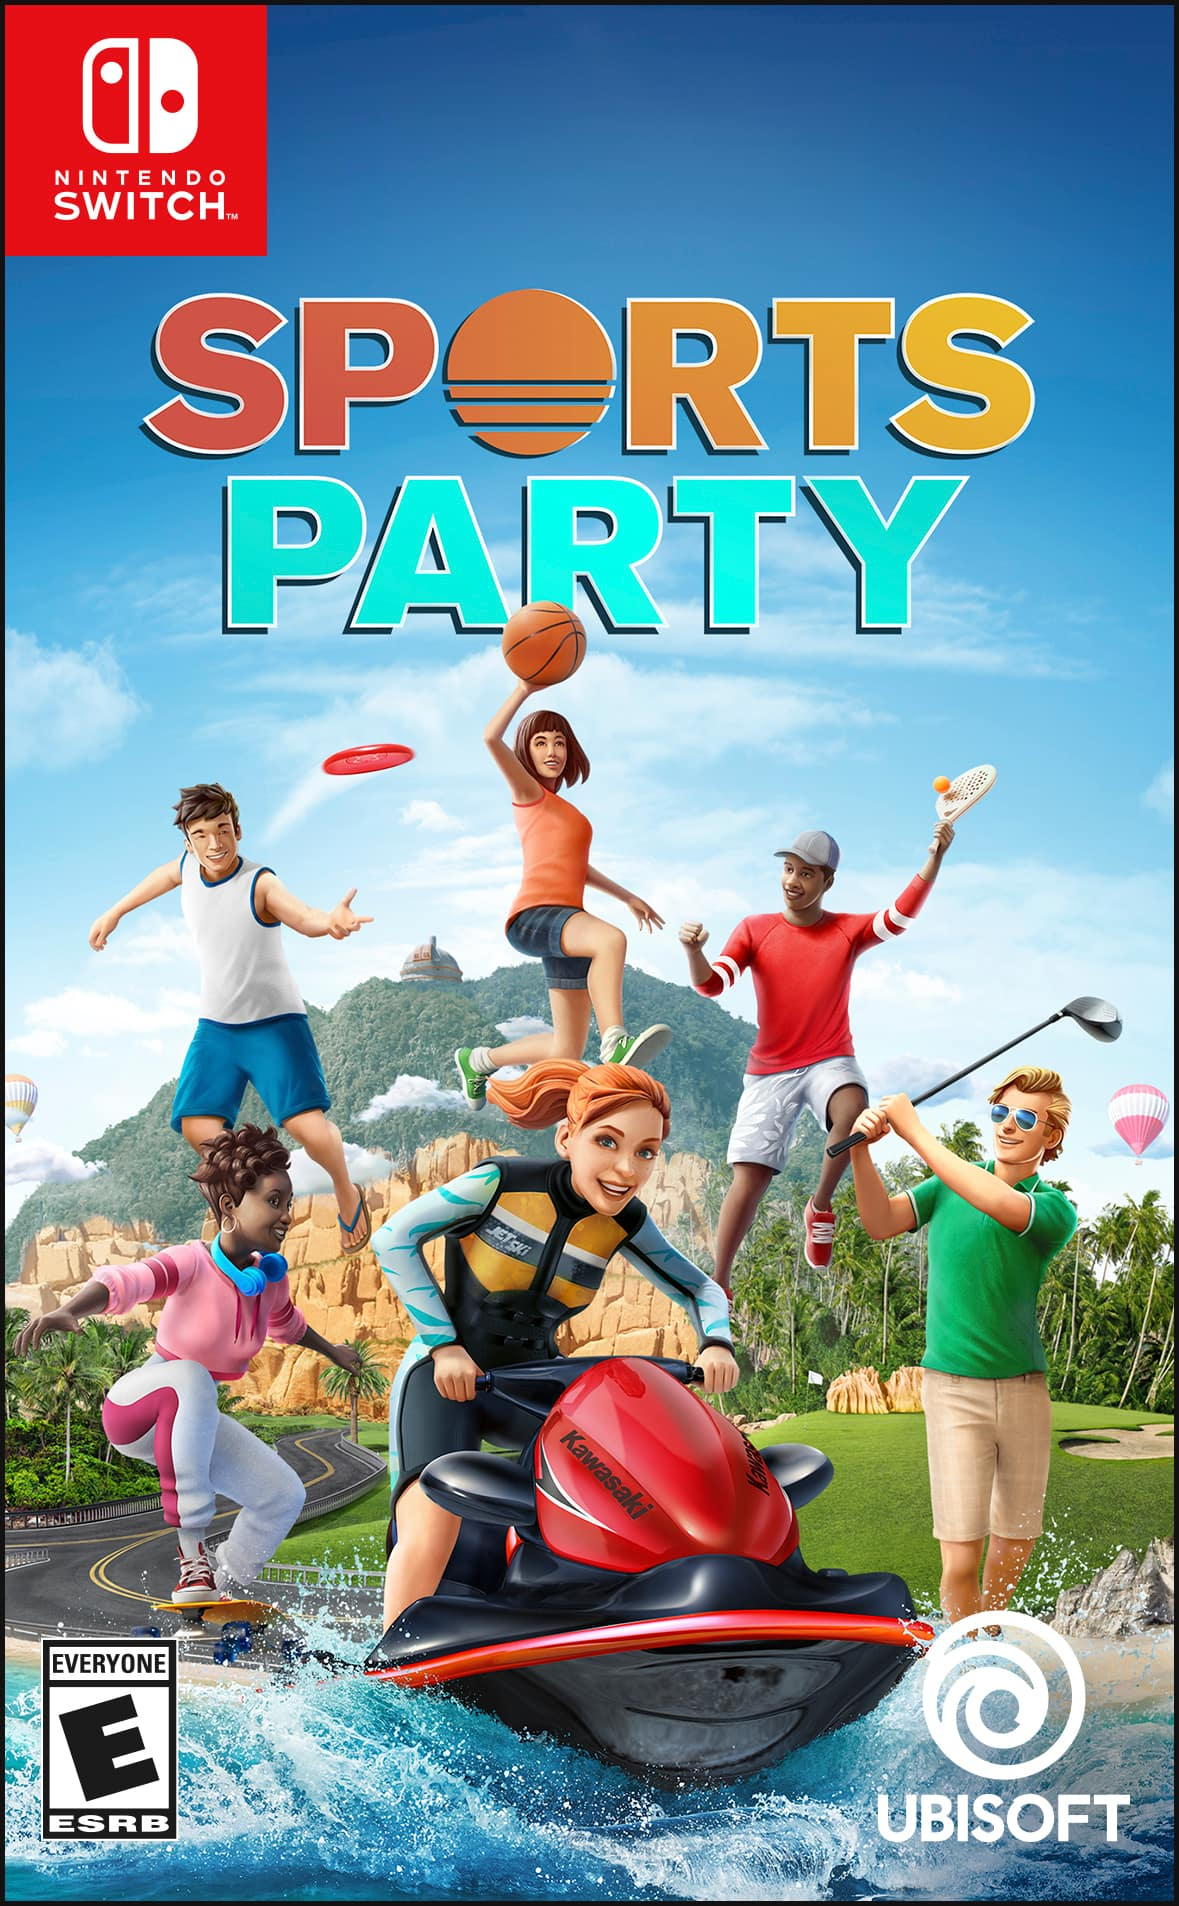 Sports Party - Nintendo Switch $19.99